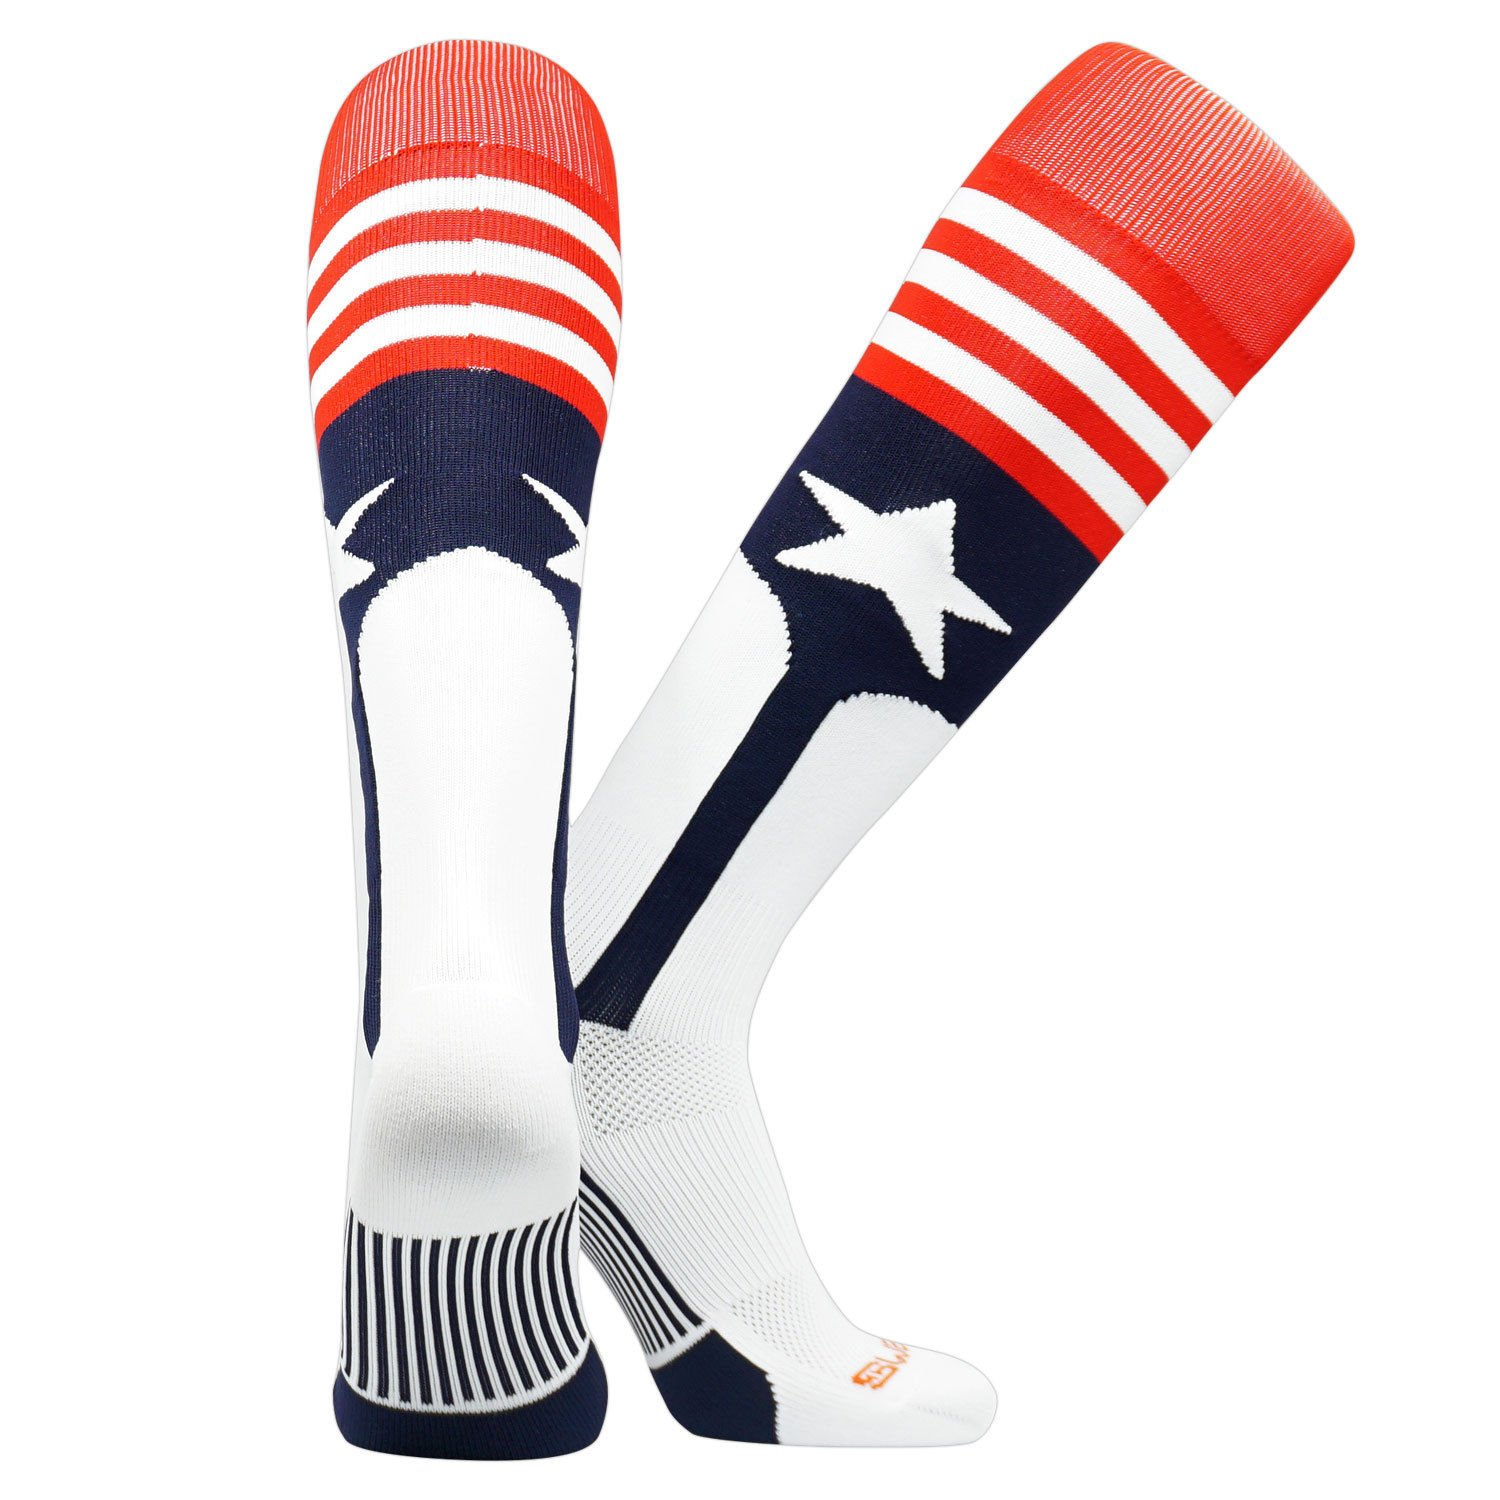 Swanq Stars and Stripes USA Baseball Stirrup Socks Made by TCK (Large (USM 9-12, USW 10-13)) by Swanq